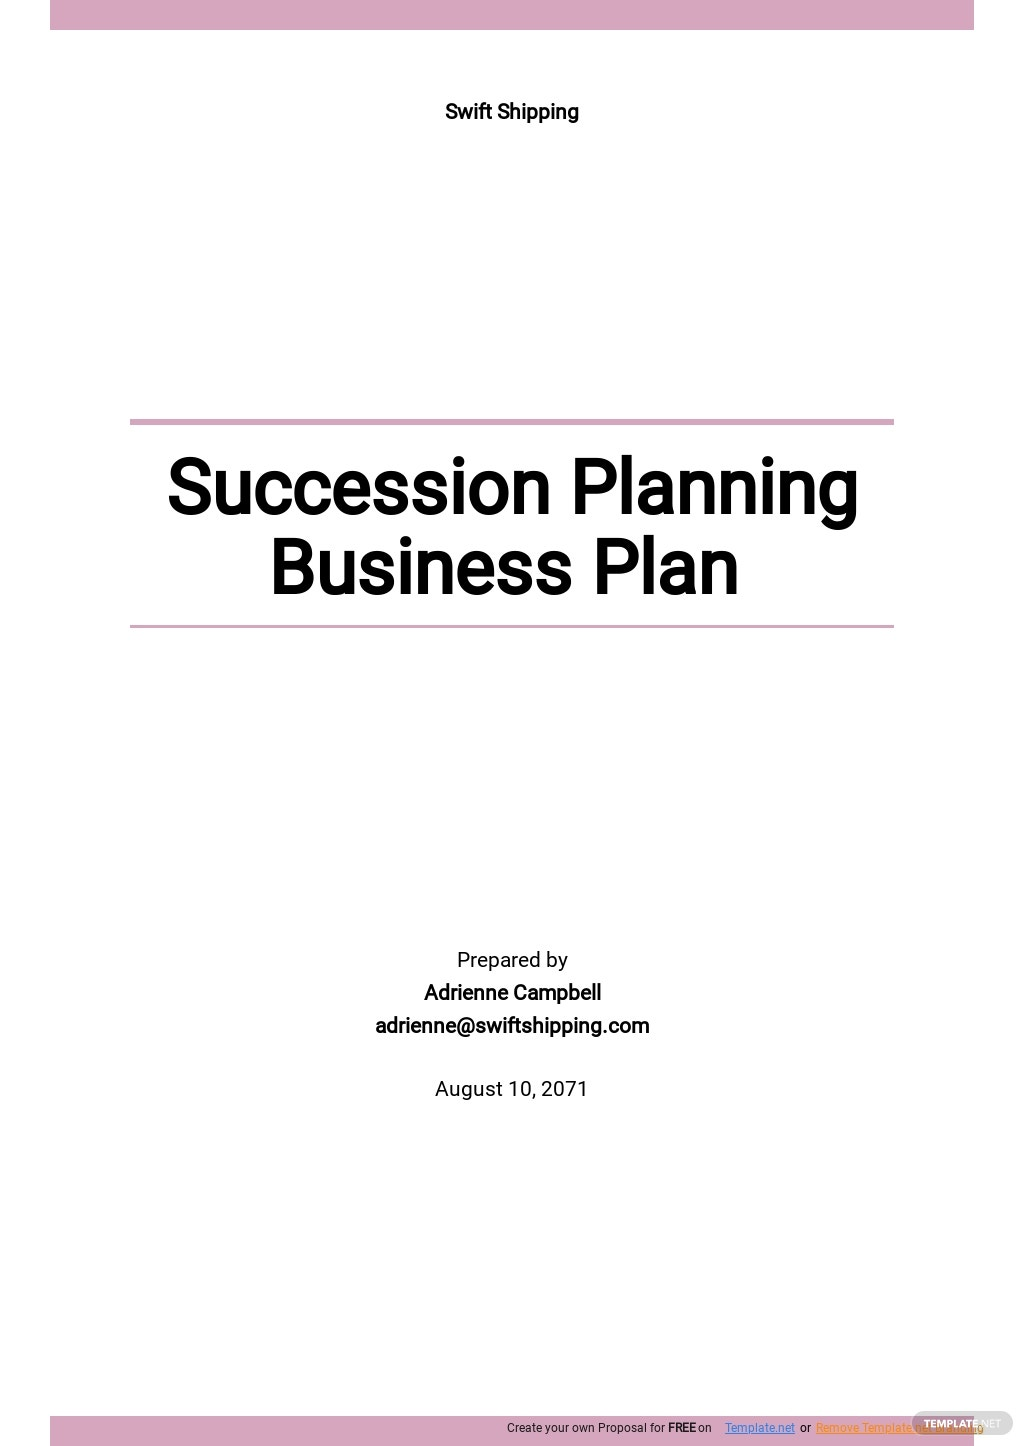 Succession Planning Business Plan Template .jpe